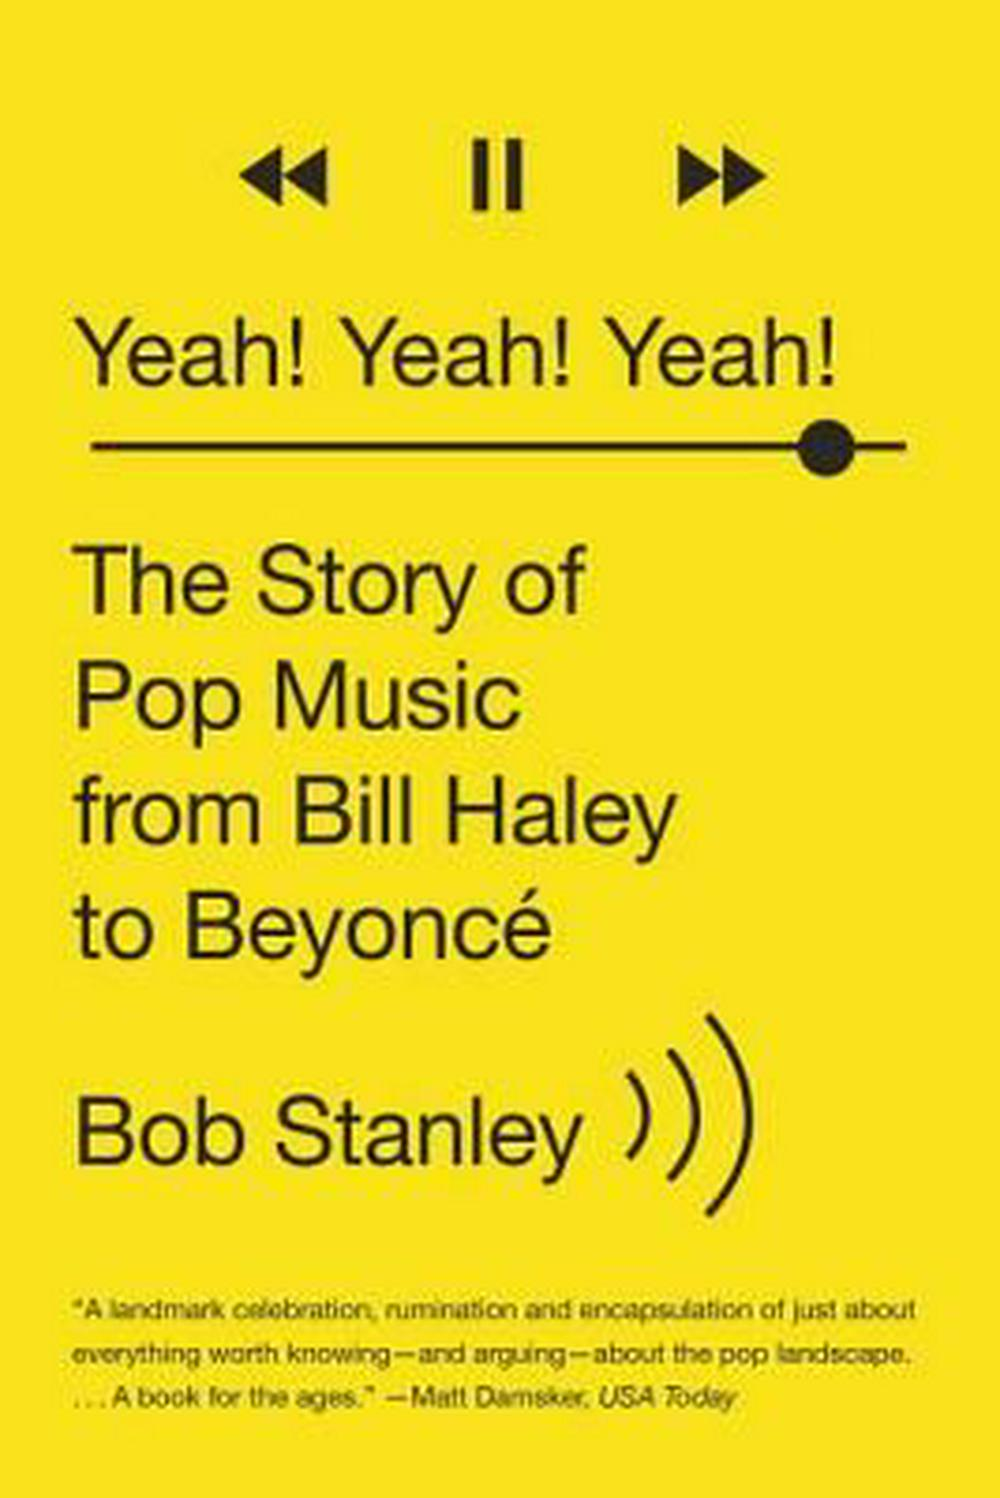 Yeah! Yeah! Yeah!The Story of Pop Music from Bill Haley to Beyonce